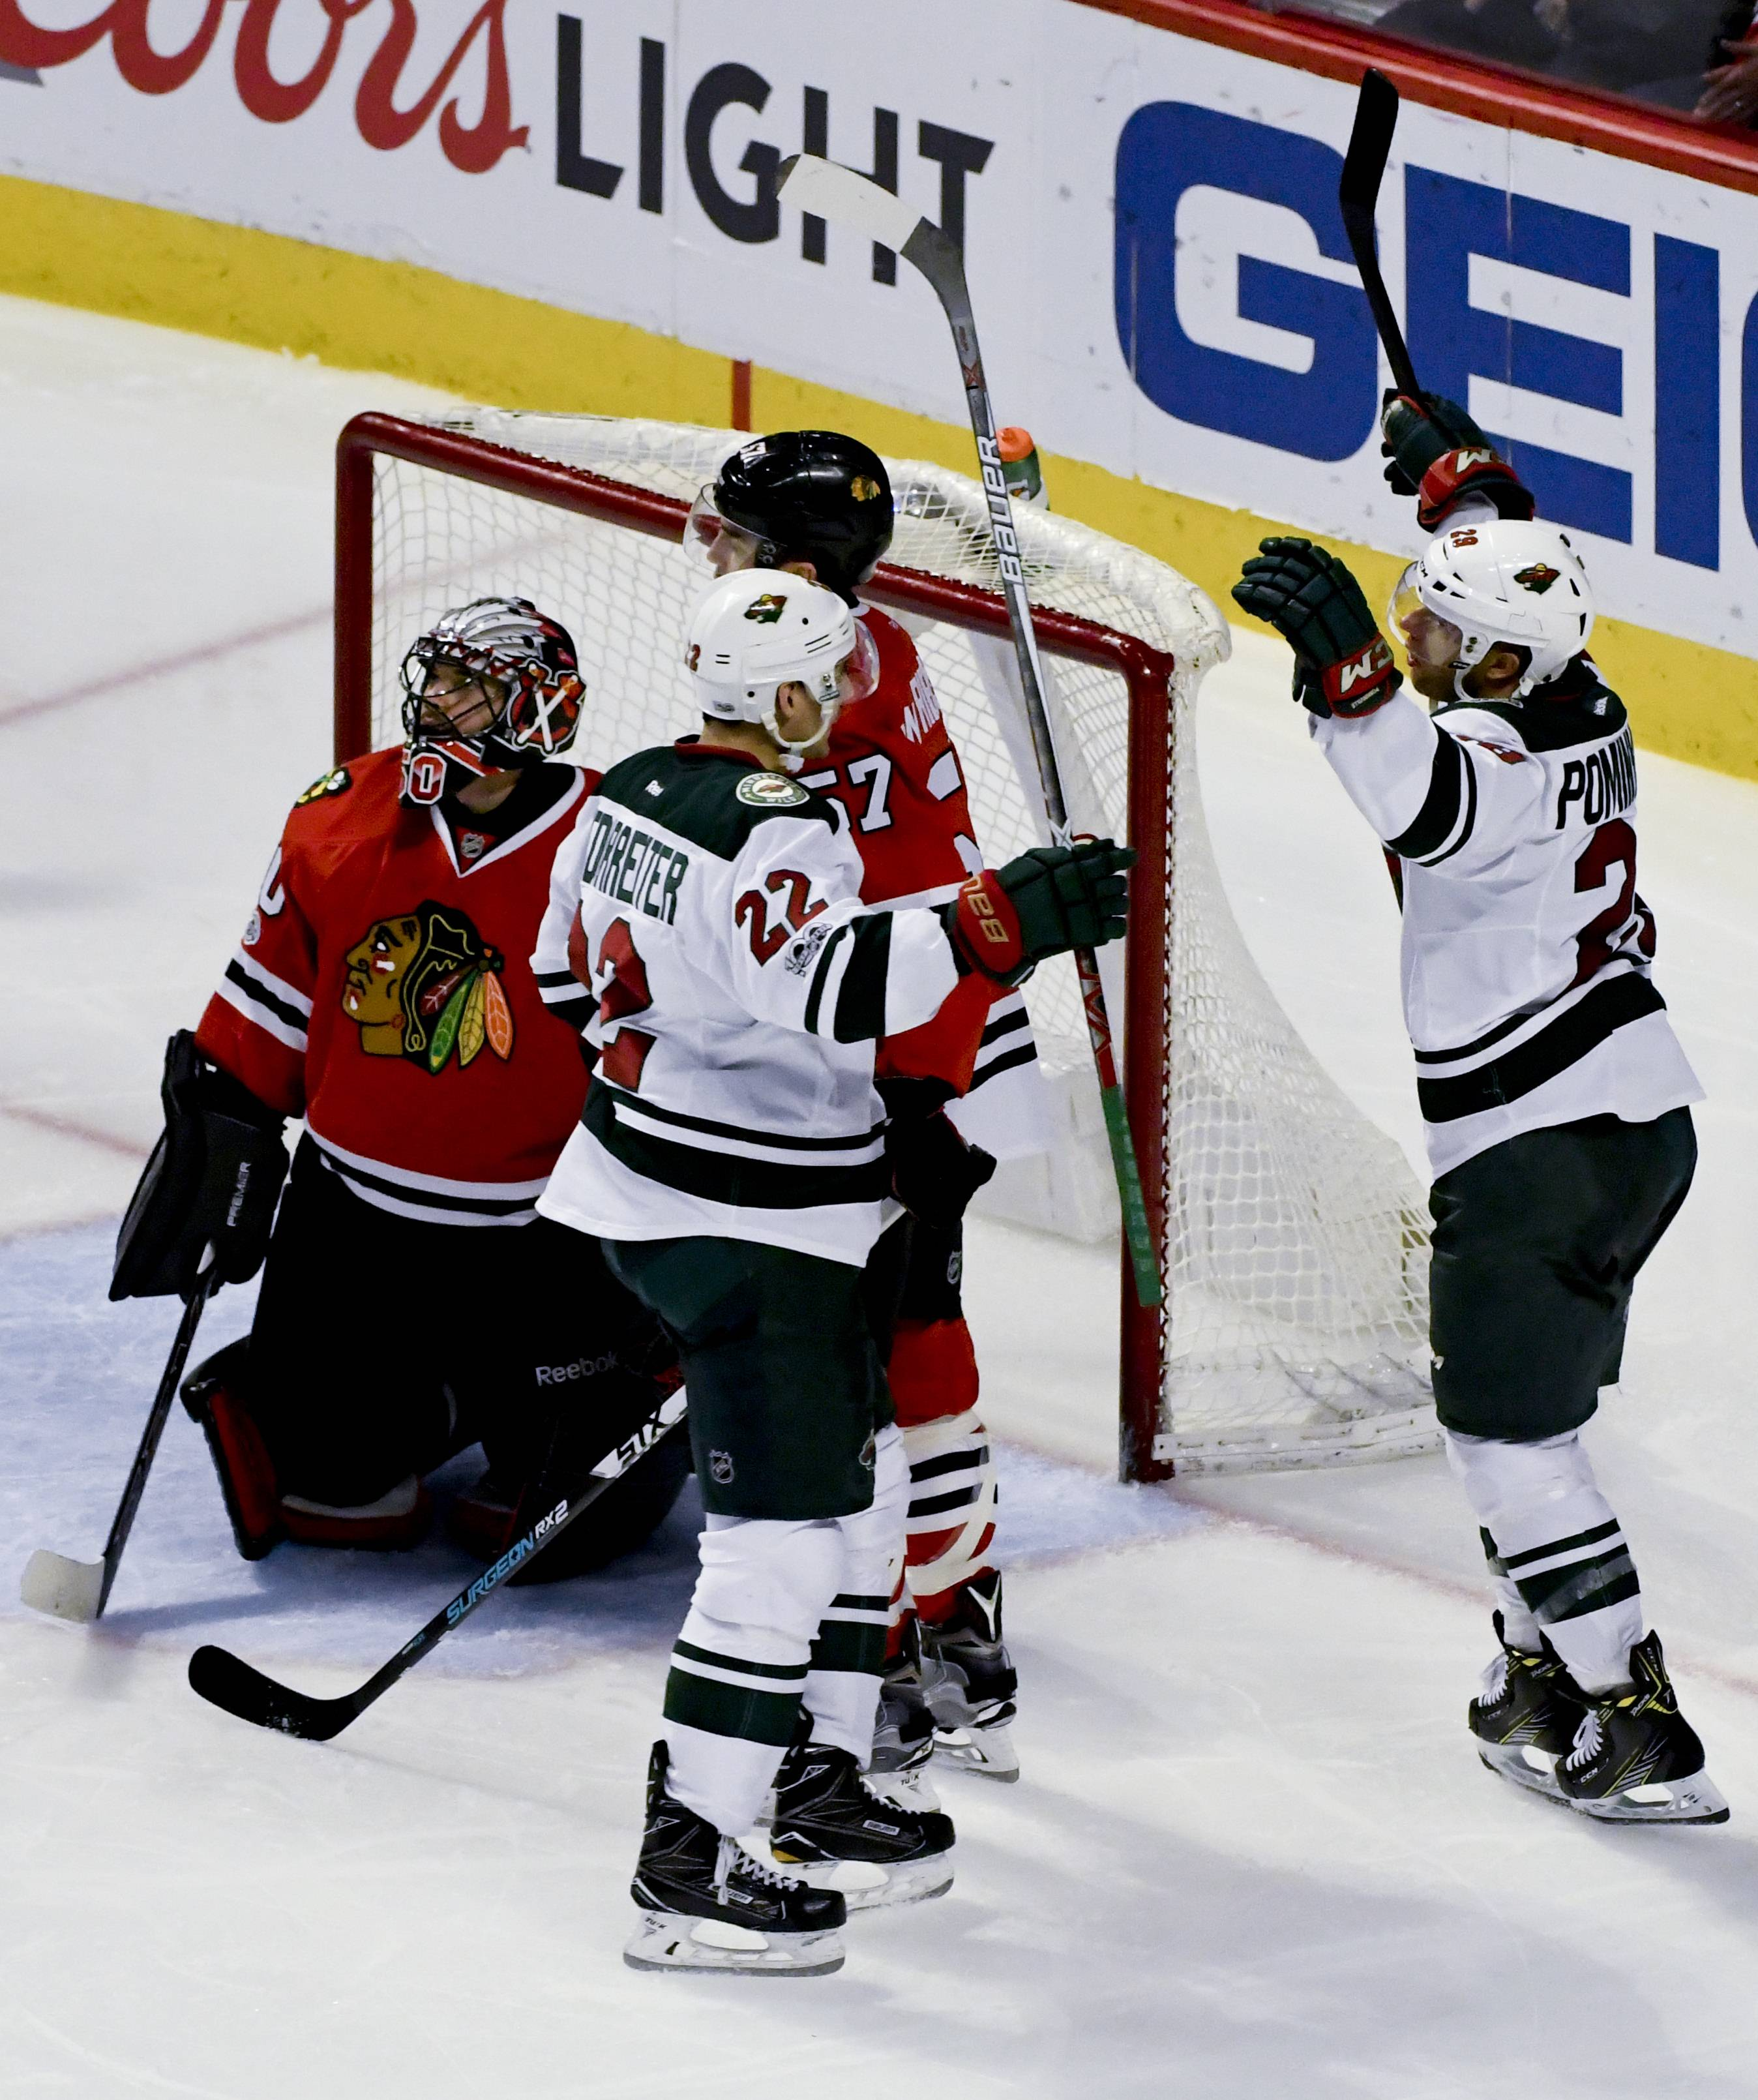 Chicago Blackhawks goalie Corey Crawford (50) and Trevor van Riemsdyk , center, look on as Minnesota Wild right wing Nino Niederreiter (22) and right wing Jason Pominville, right, celebrate after he scored the game winning goal during the third period of an NHL hockey game on Sunday, Jan. 15, 2017, in Chicago. (AP Photo/Matt Marton)